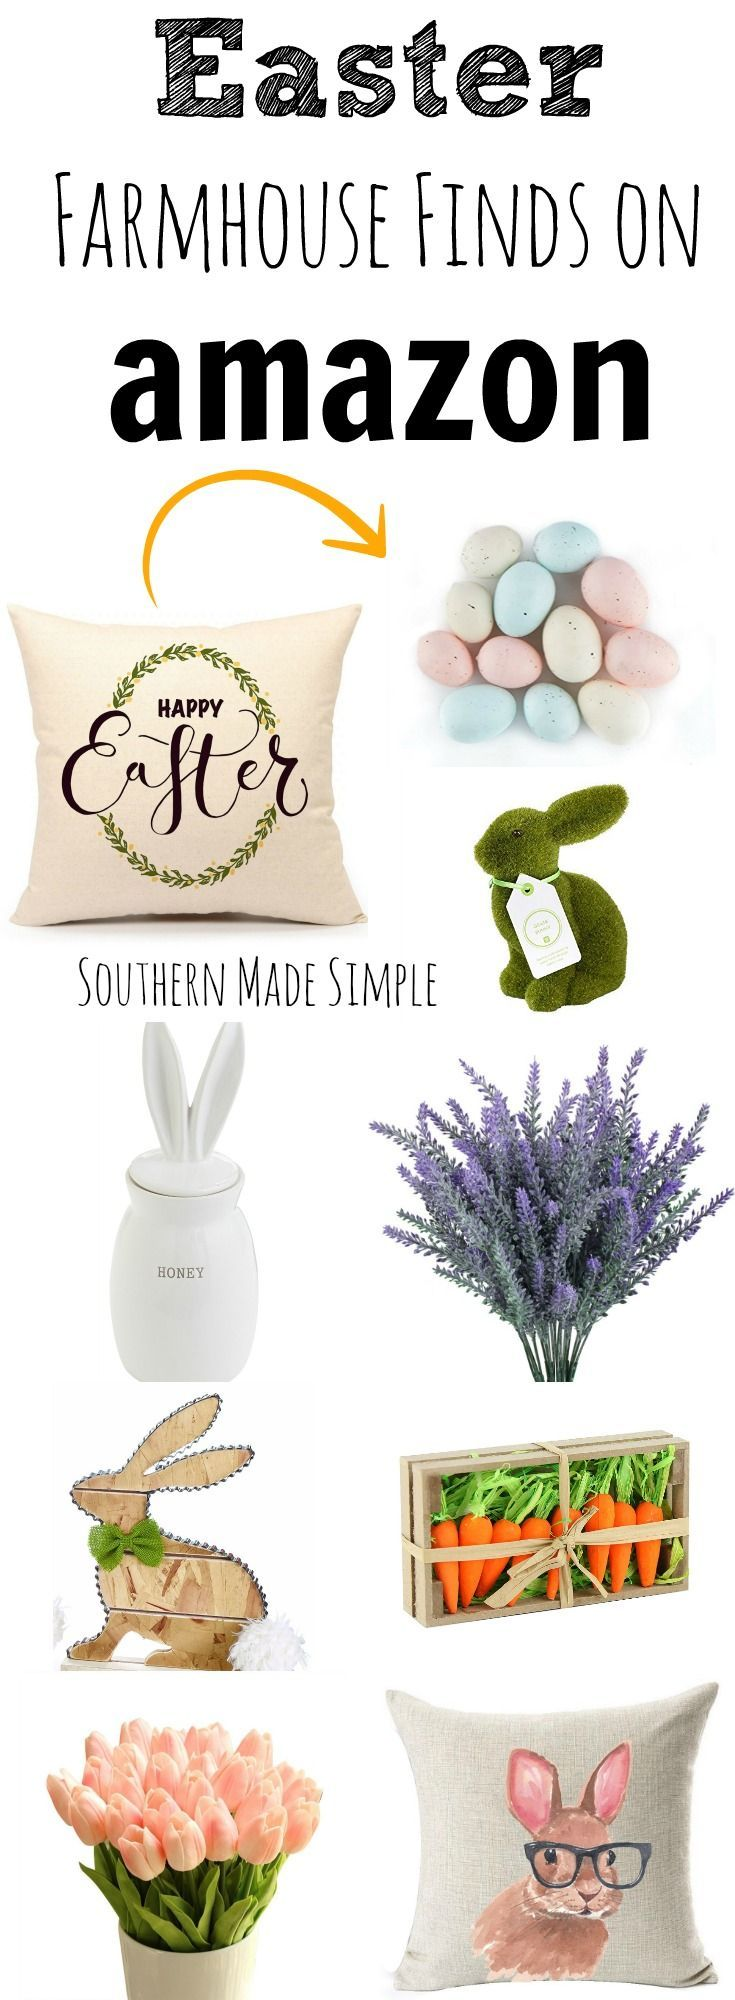 """The BEST collection of Farmhouse """"Fixer Upper"""" inspired Easter decor on Amazon! Hello, 2 day shipping!"""